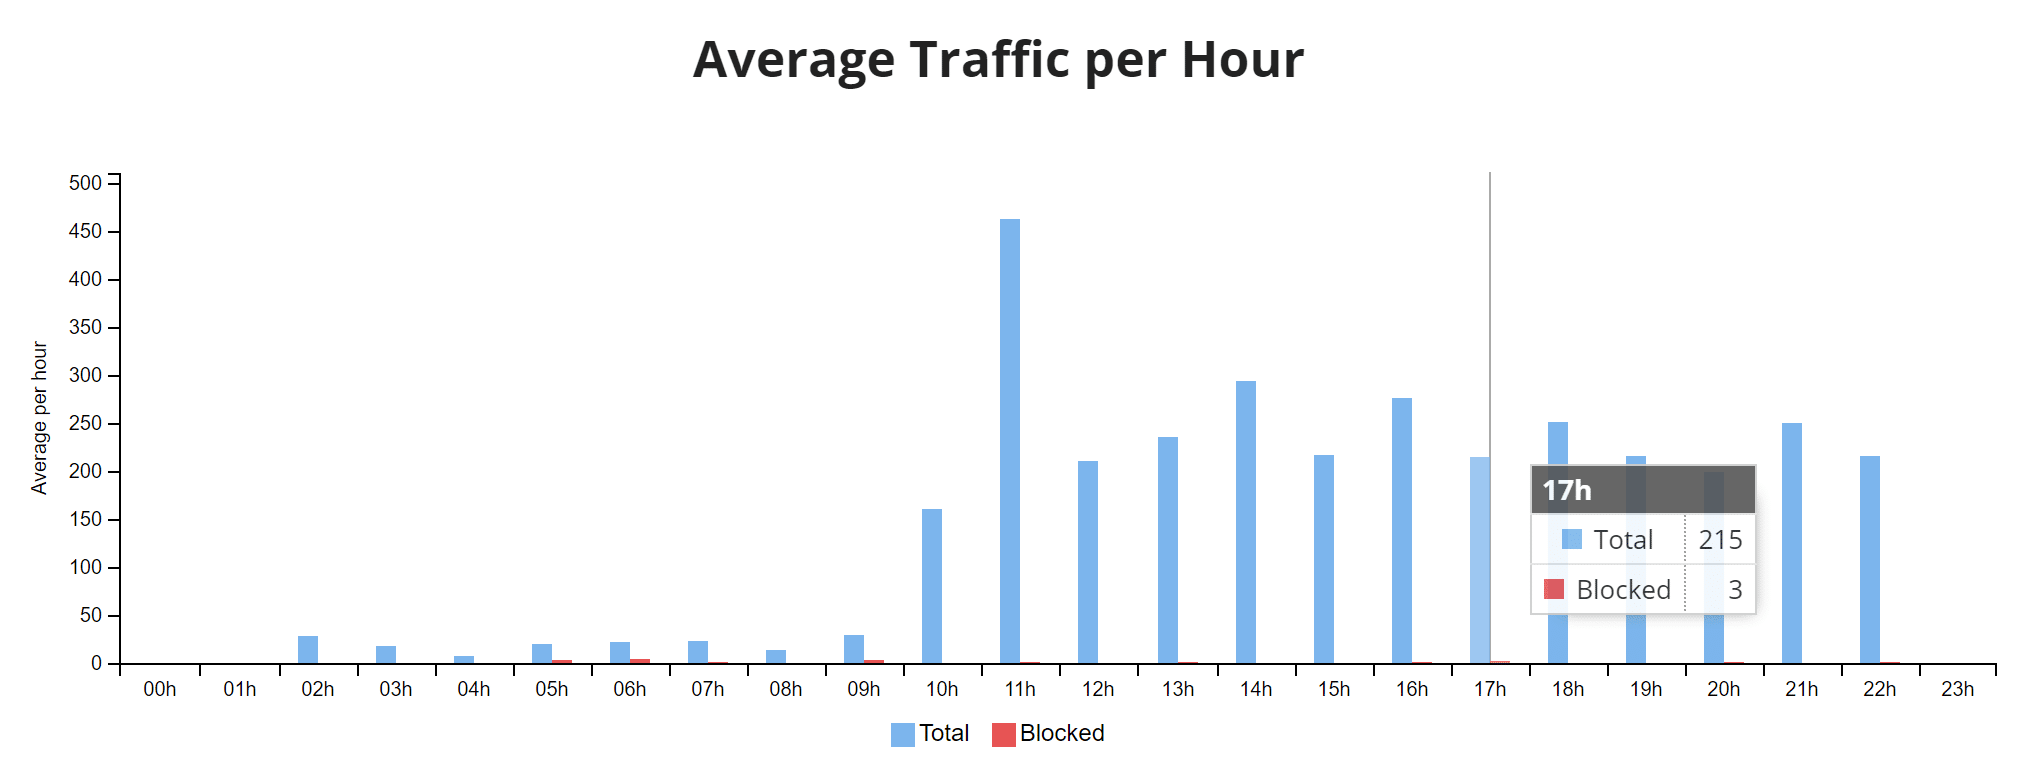 Average traffic per hour